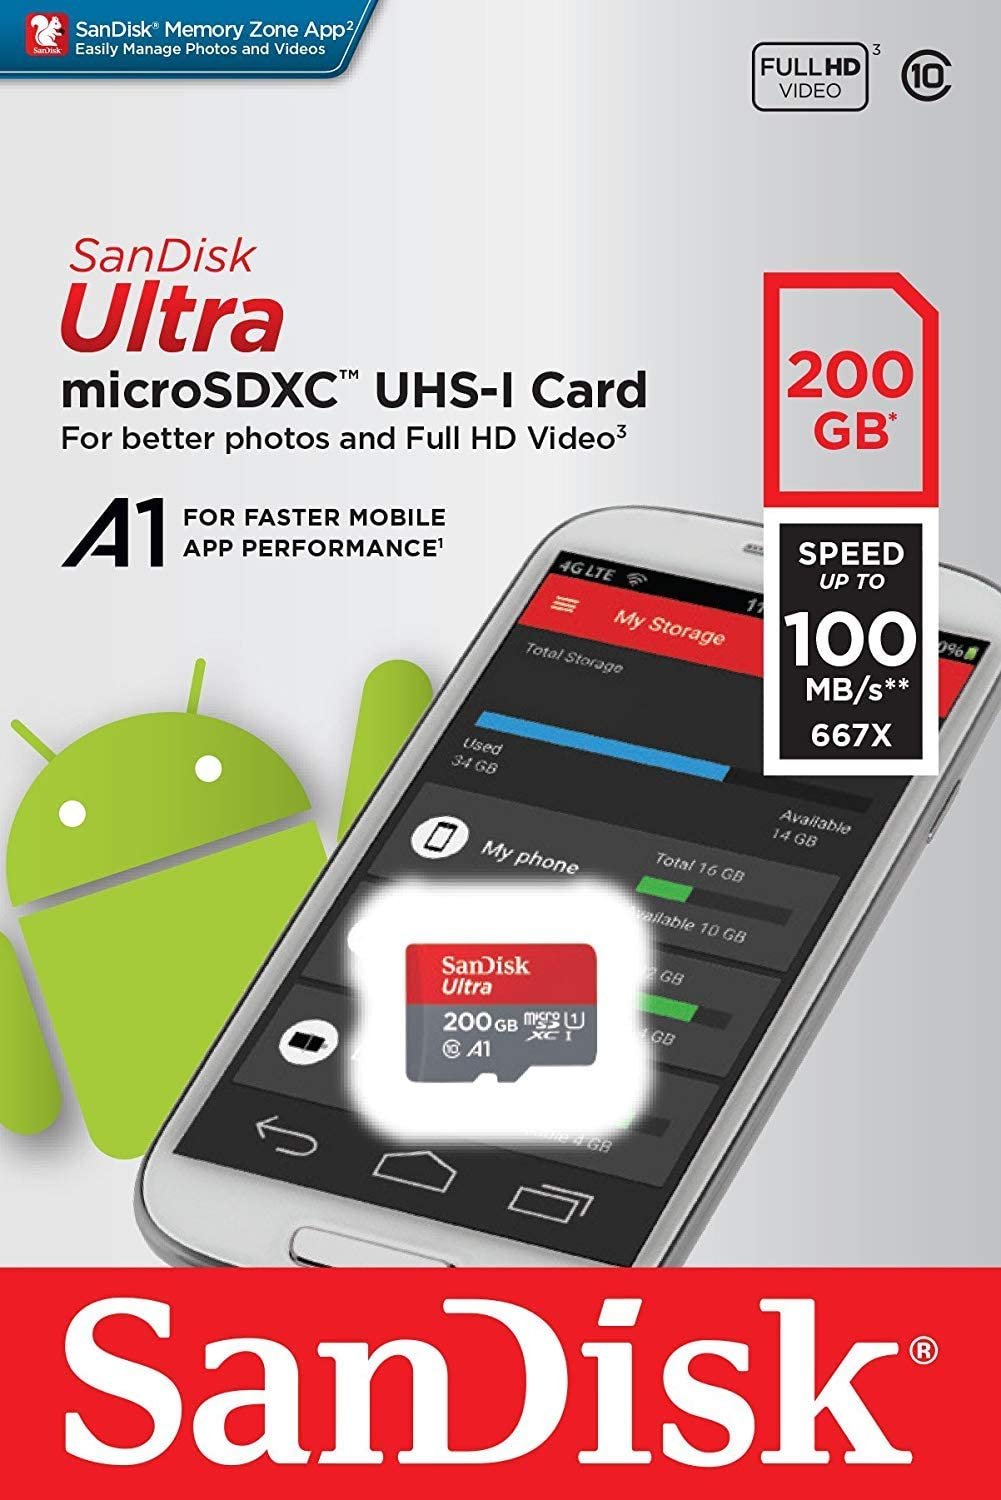 100MBs A1 U1 C10 Works with SanDisk SanDisk Ultra 200GB MicroSDXC Verified for LG K30 by SanFlash